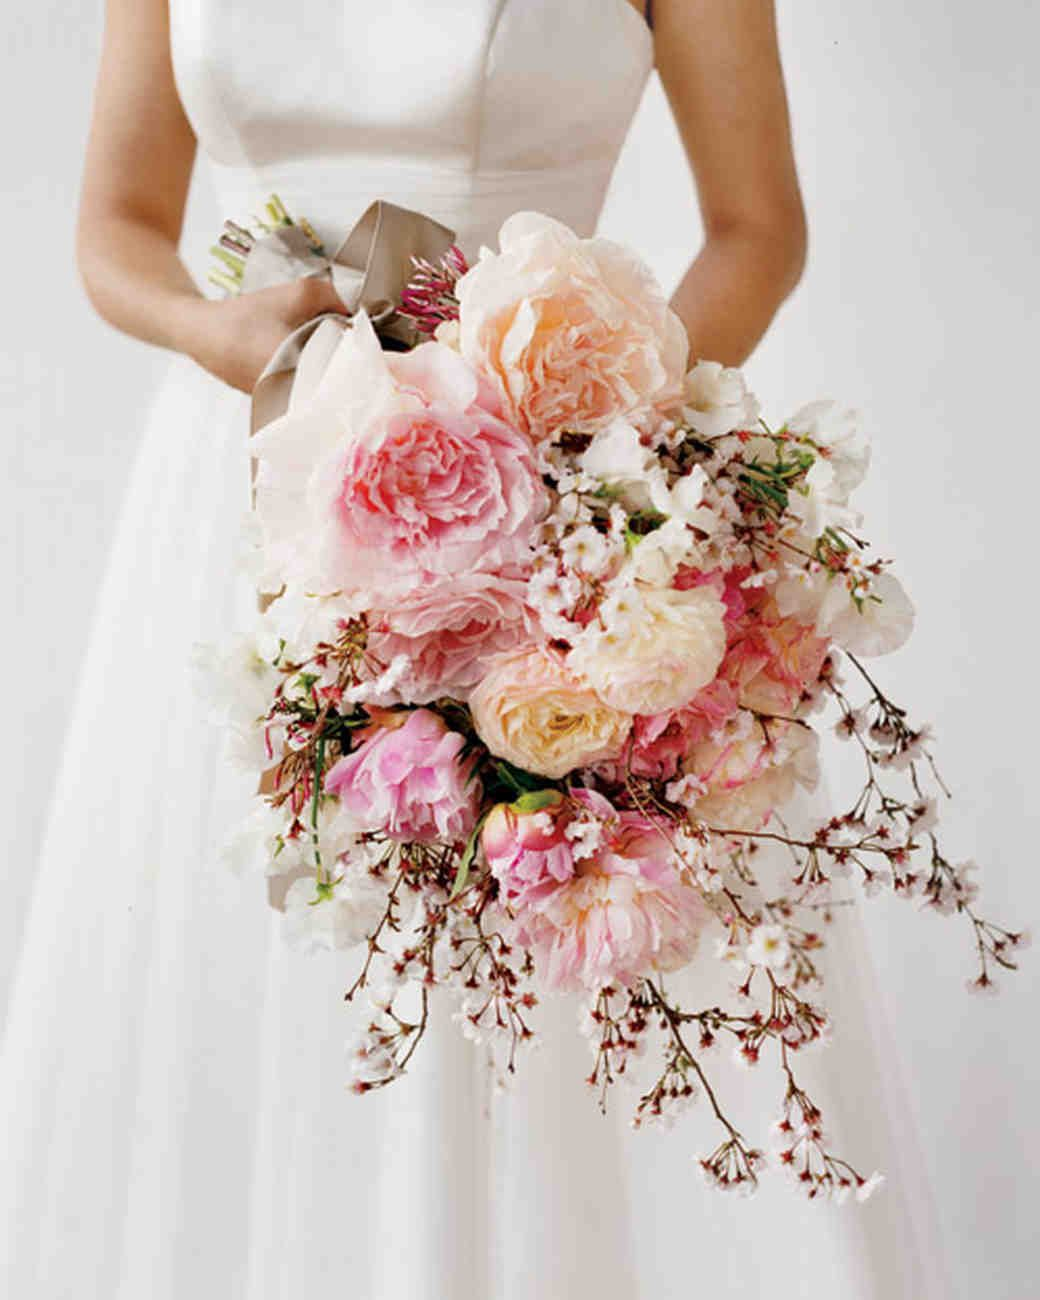 Bridal Showers Bouquet With Cherry Blossoms